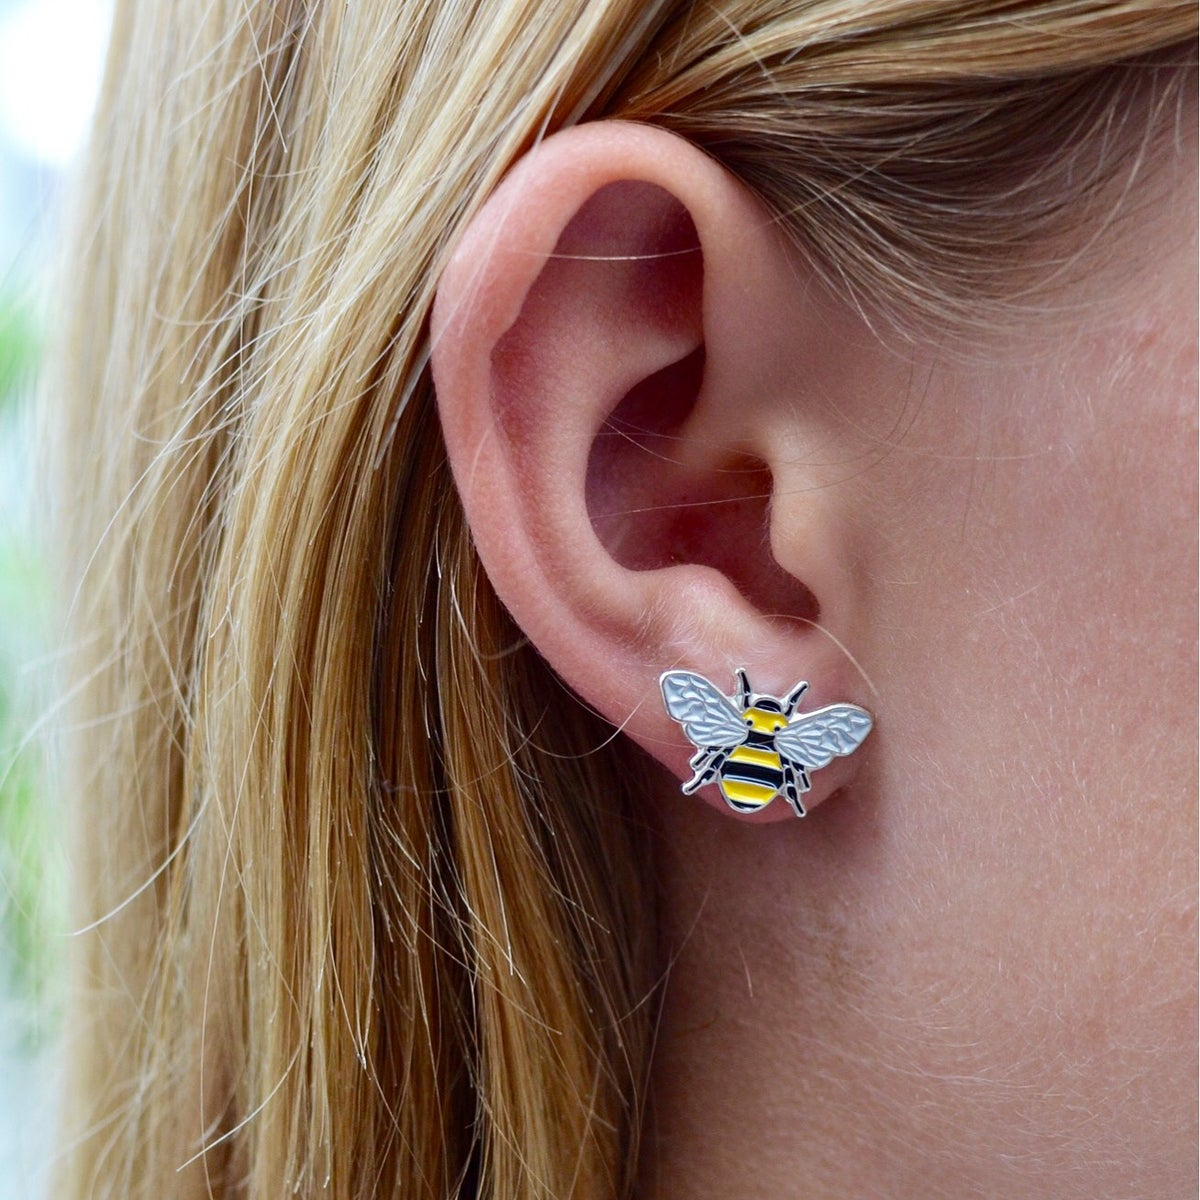 Image of BEE ENAMEL STUD EARRING SET - YELLOW + BLACK